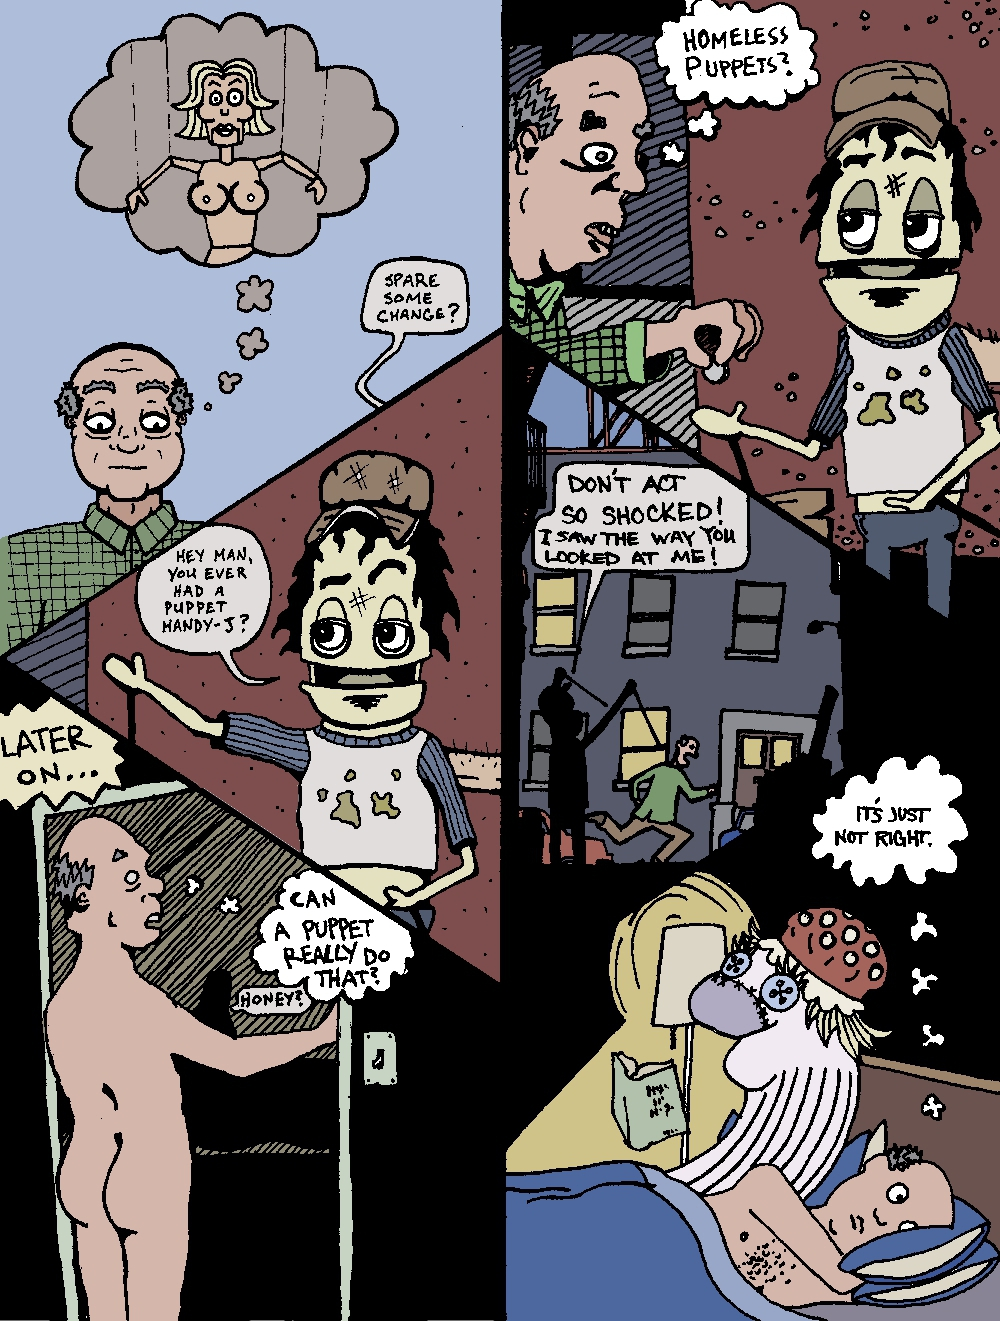 PUPPETS -[*in color*]-(by Marx McNeill, Nate Crone*, and Ed Rivera)